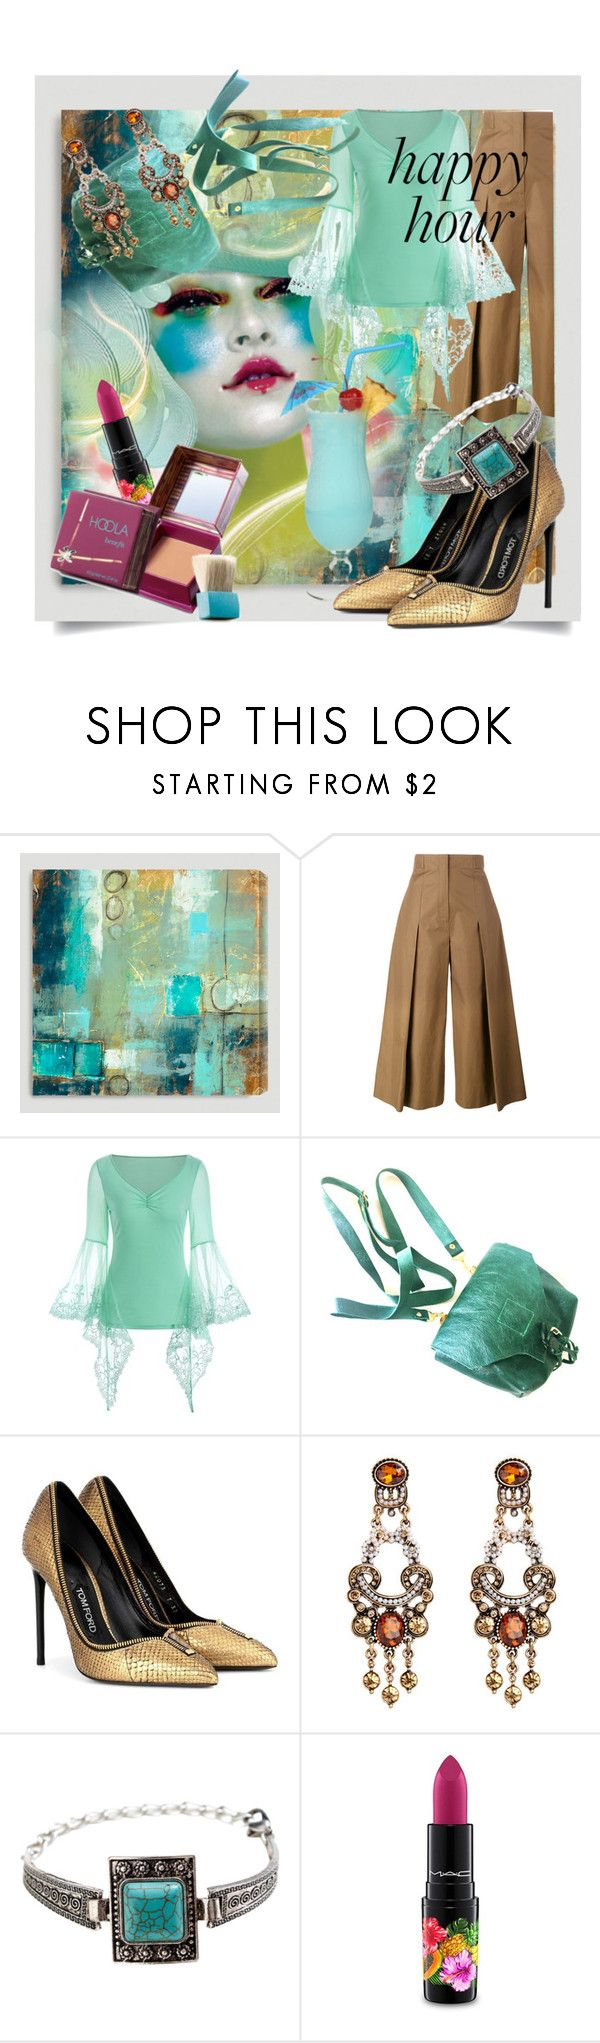 """""""Bottoms Up: Happy Hour"""" by kari-c ❤ liked on Polyvore featuring Cost Plus World Market, Fendi, Tom Ford, MAC Cosmetics, Benefit and happyhour"""